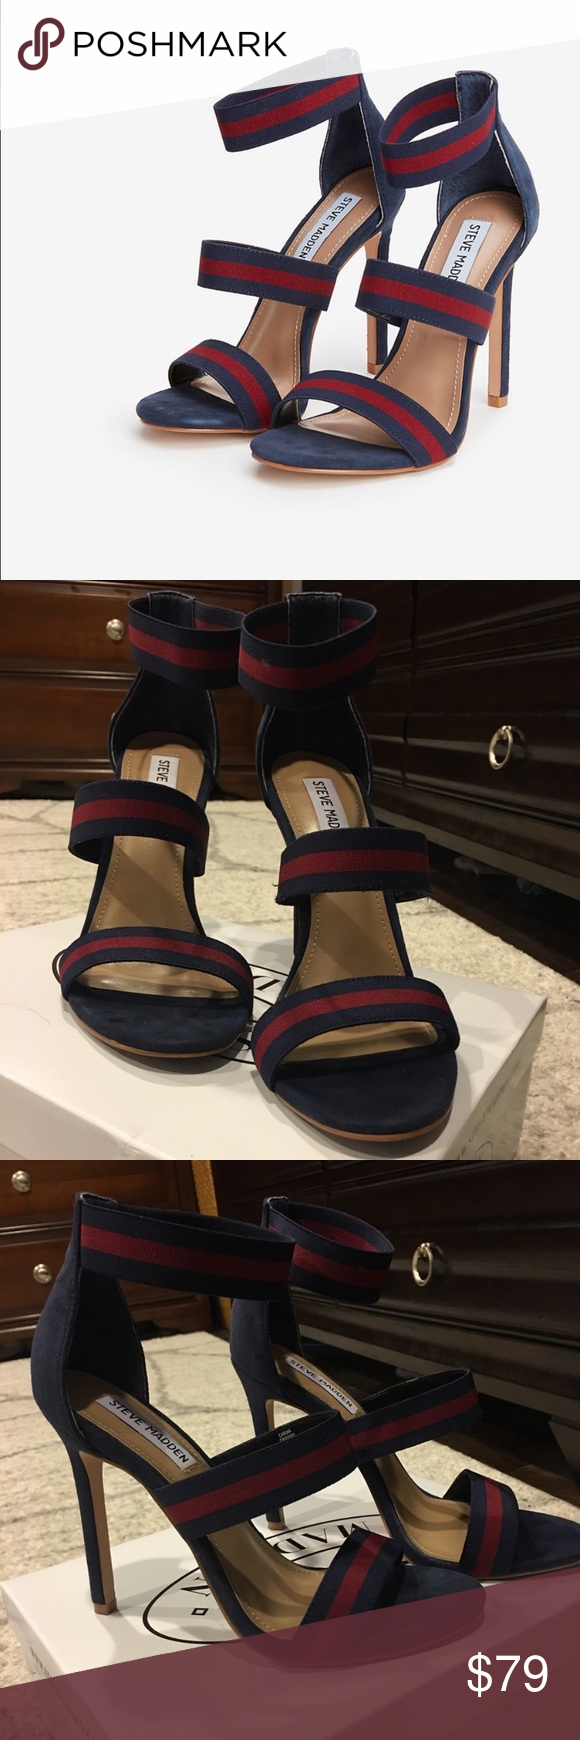 6e0dbede875 Steve Madden Carina Sandals Three wide straps tops off a sleek stiletto heel  for a comfortably chic dressy look in Steve Madden s Carina sandals.